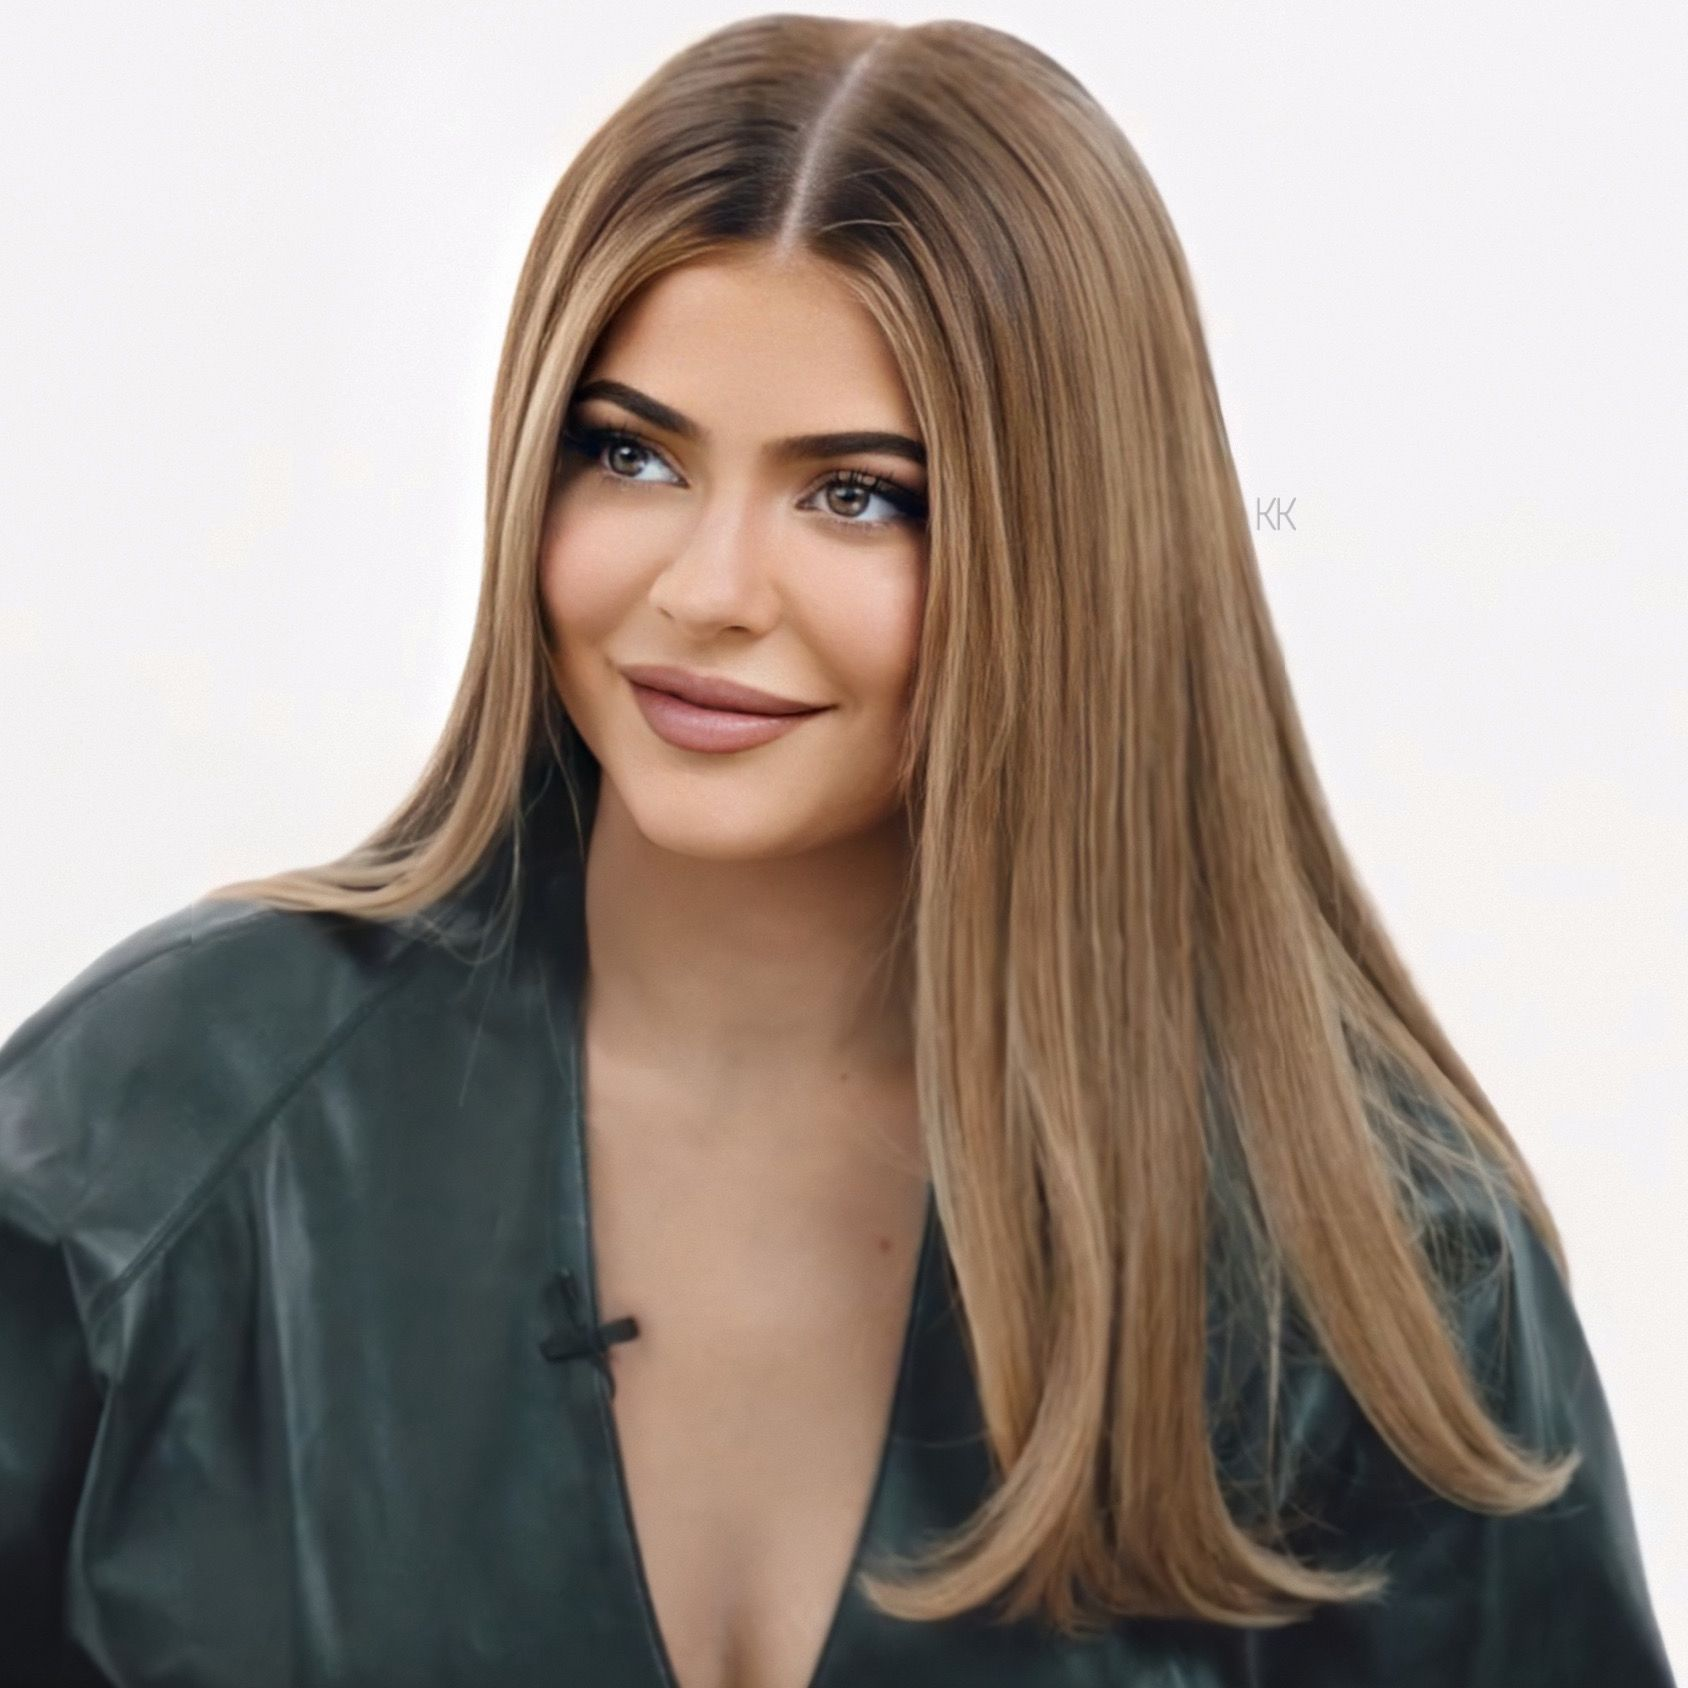 Kylie Jenner In 2020 Kylie Jenner Hair Color Kylie Jenner Hair Jenner Hair